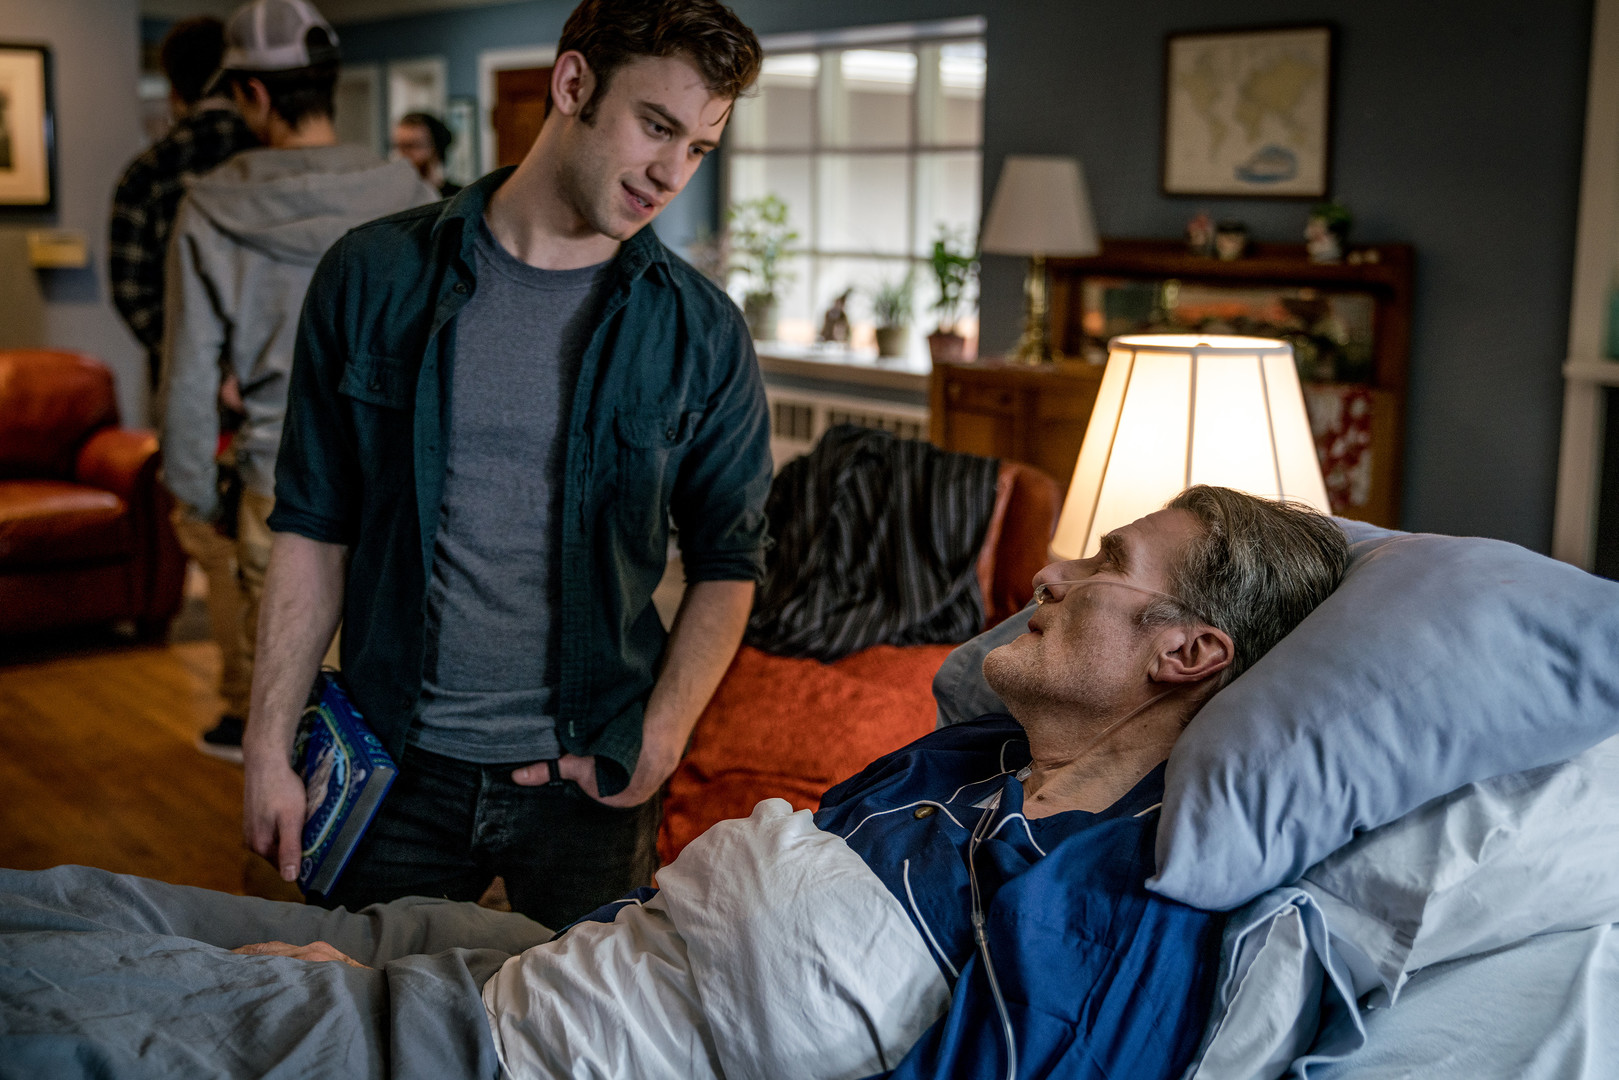 Old Blue Eyes Ain't Nothing - Directed by Shelby SmoutAn elderly man on his deathbed has accepted his fate, but his visiting grandson diverts the conversation from the present by reminiscing on the past.